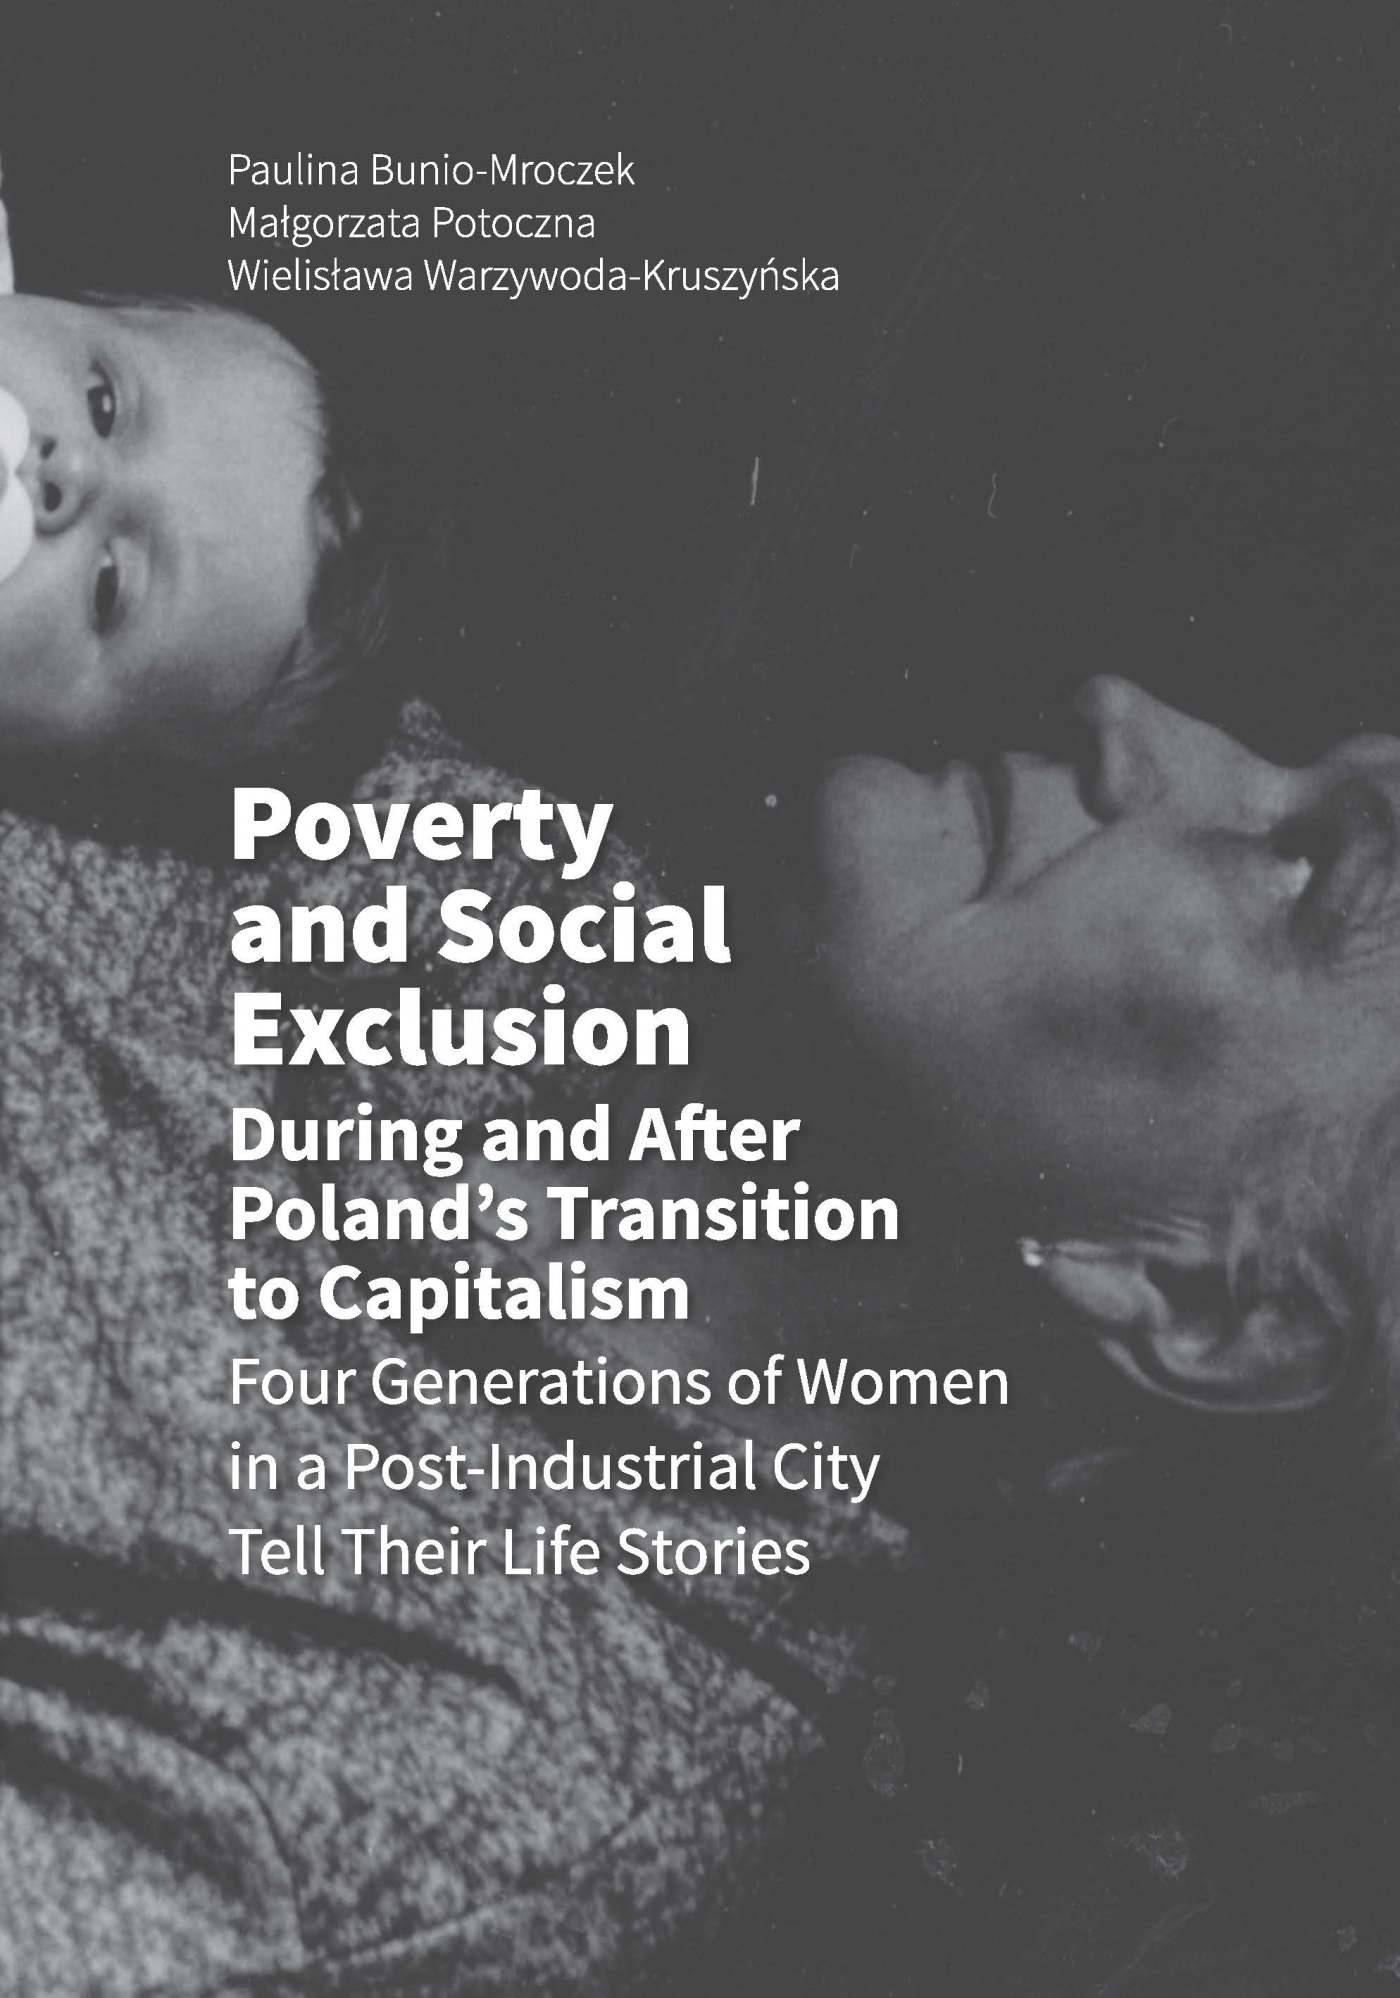 Poverty and Social Exclusion During and After Poland's Transition to Capitalism Four Generations of Women in a Post-Industrial City Tell Their Life Stories - Ebook (Książka PDF) do pobrania w formacie PDF